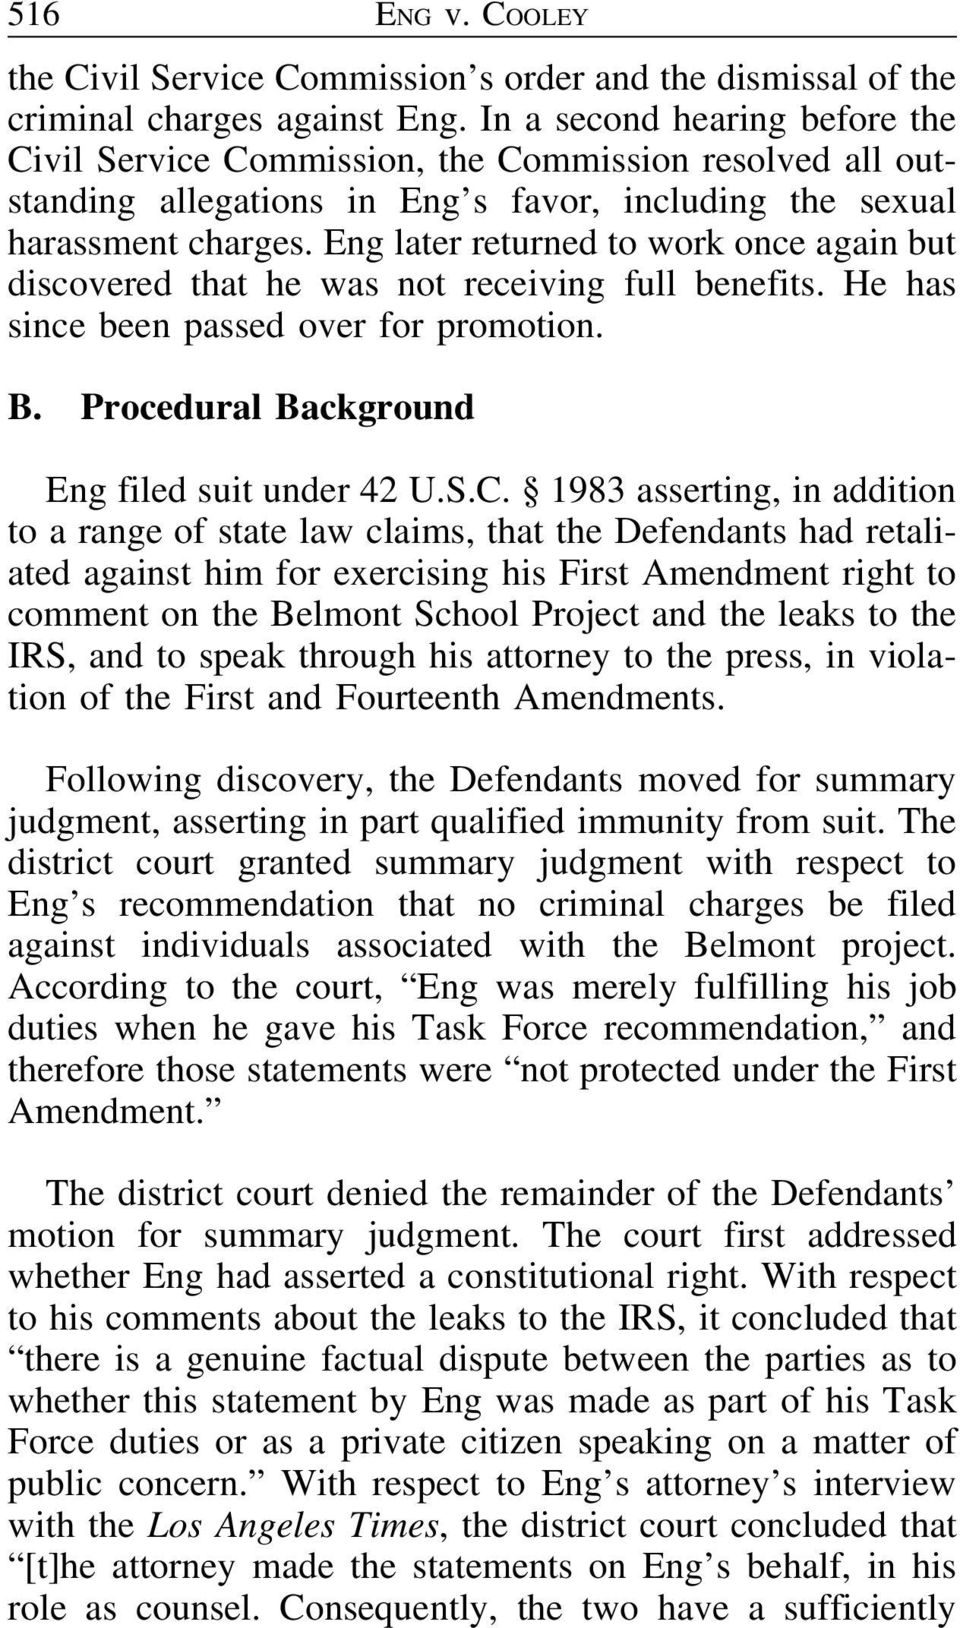 Eng later returned to work once again but discovered that he was not receiving full benefits. He has since been passed over for promotion. B. Procedural Background Eng filed suit under 42 U.S.C.